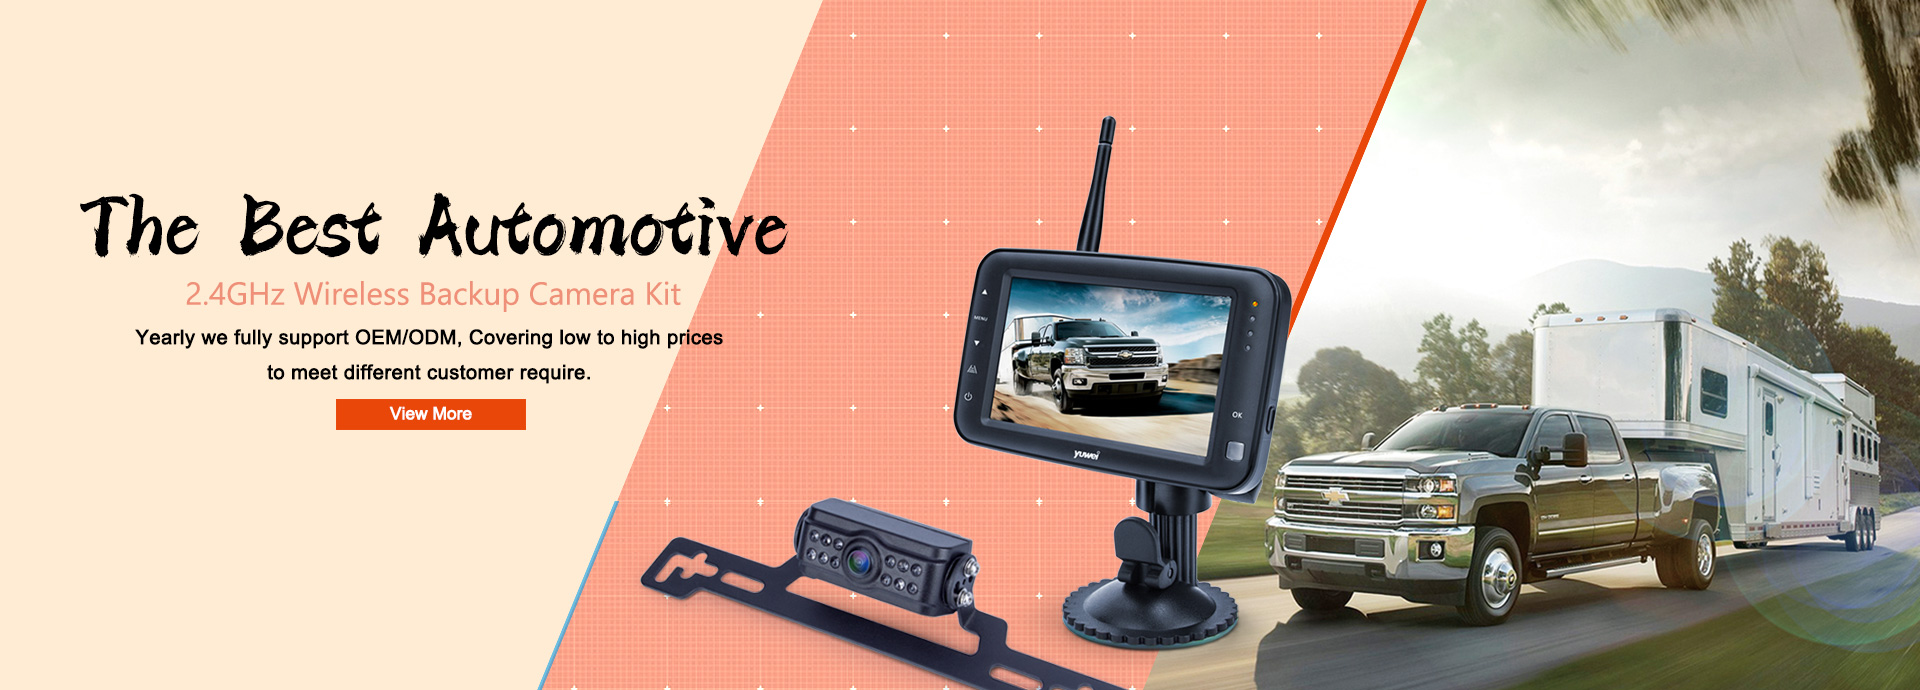 Automotive 2.4GHz Digital Wireless Backup Camera Kit